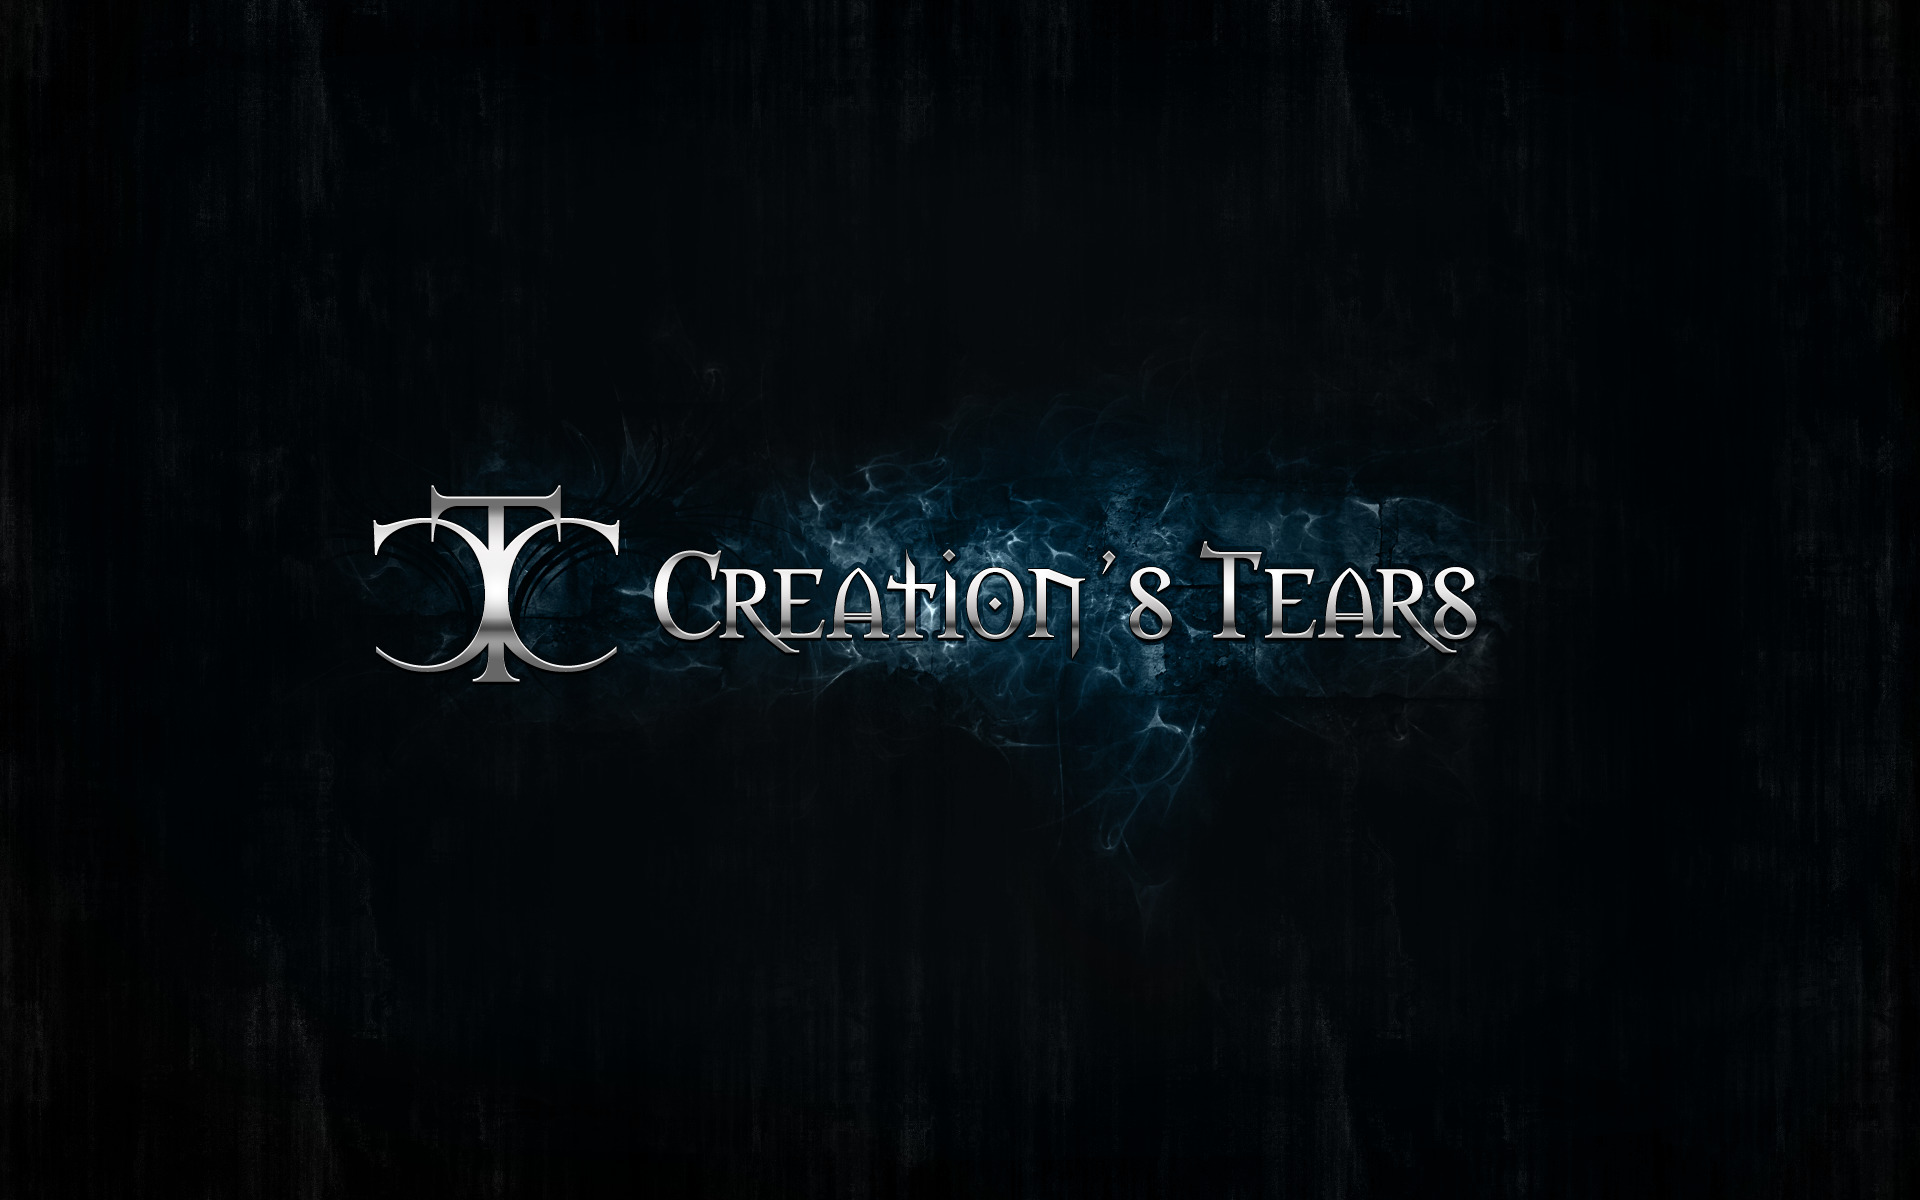 Music tears bands creations HD Wallpaper